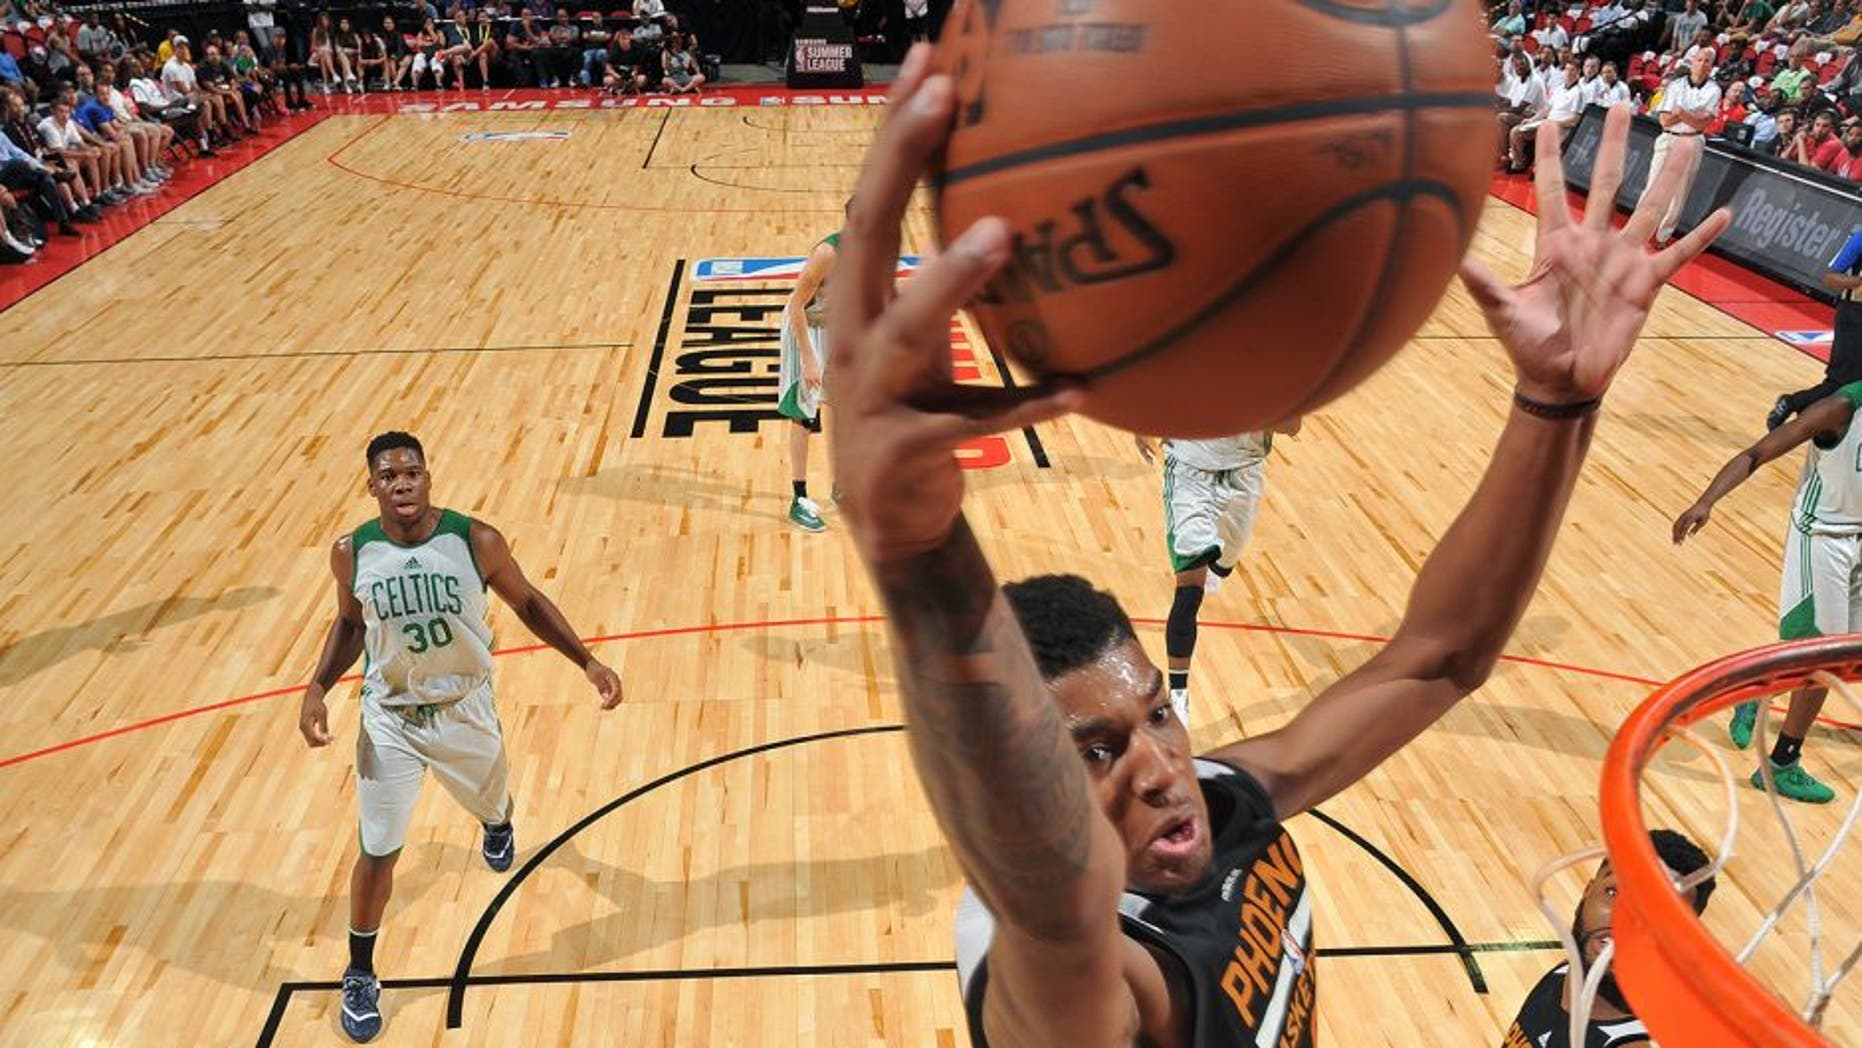 LAS VEGAS, NV - JULY 10: Marquese Chriss #0 of Phoenix Suns goes for the dunk during the game against the Boston Celtics during the 2016 NBA Las Vegas Summer League on July 10, 2016 at the Thomas & Mack Center in Las Vegas, Nevada. NOTE TO USER: User expressly acknowledges and agrees that, by downloading and or using this photograph, user is consenting to the terms and conditions of Getty Images License Agreement. Mandatory Copyright Notice: Copyright 2016 NBAE (Photo by Garrett Ellwood/NBAE via Getty Images)